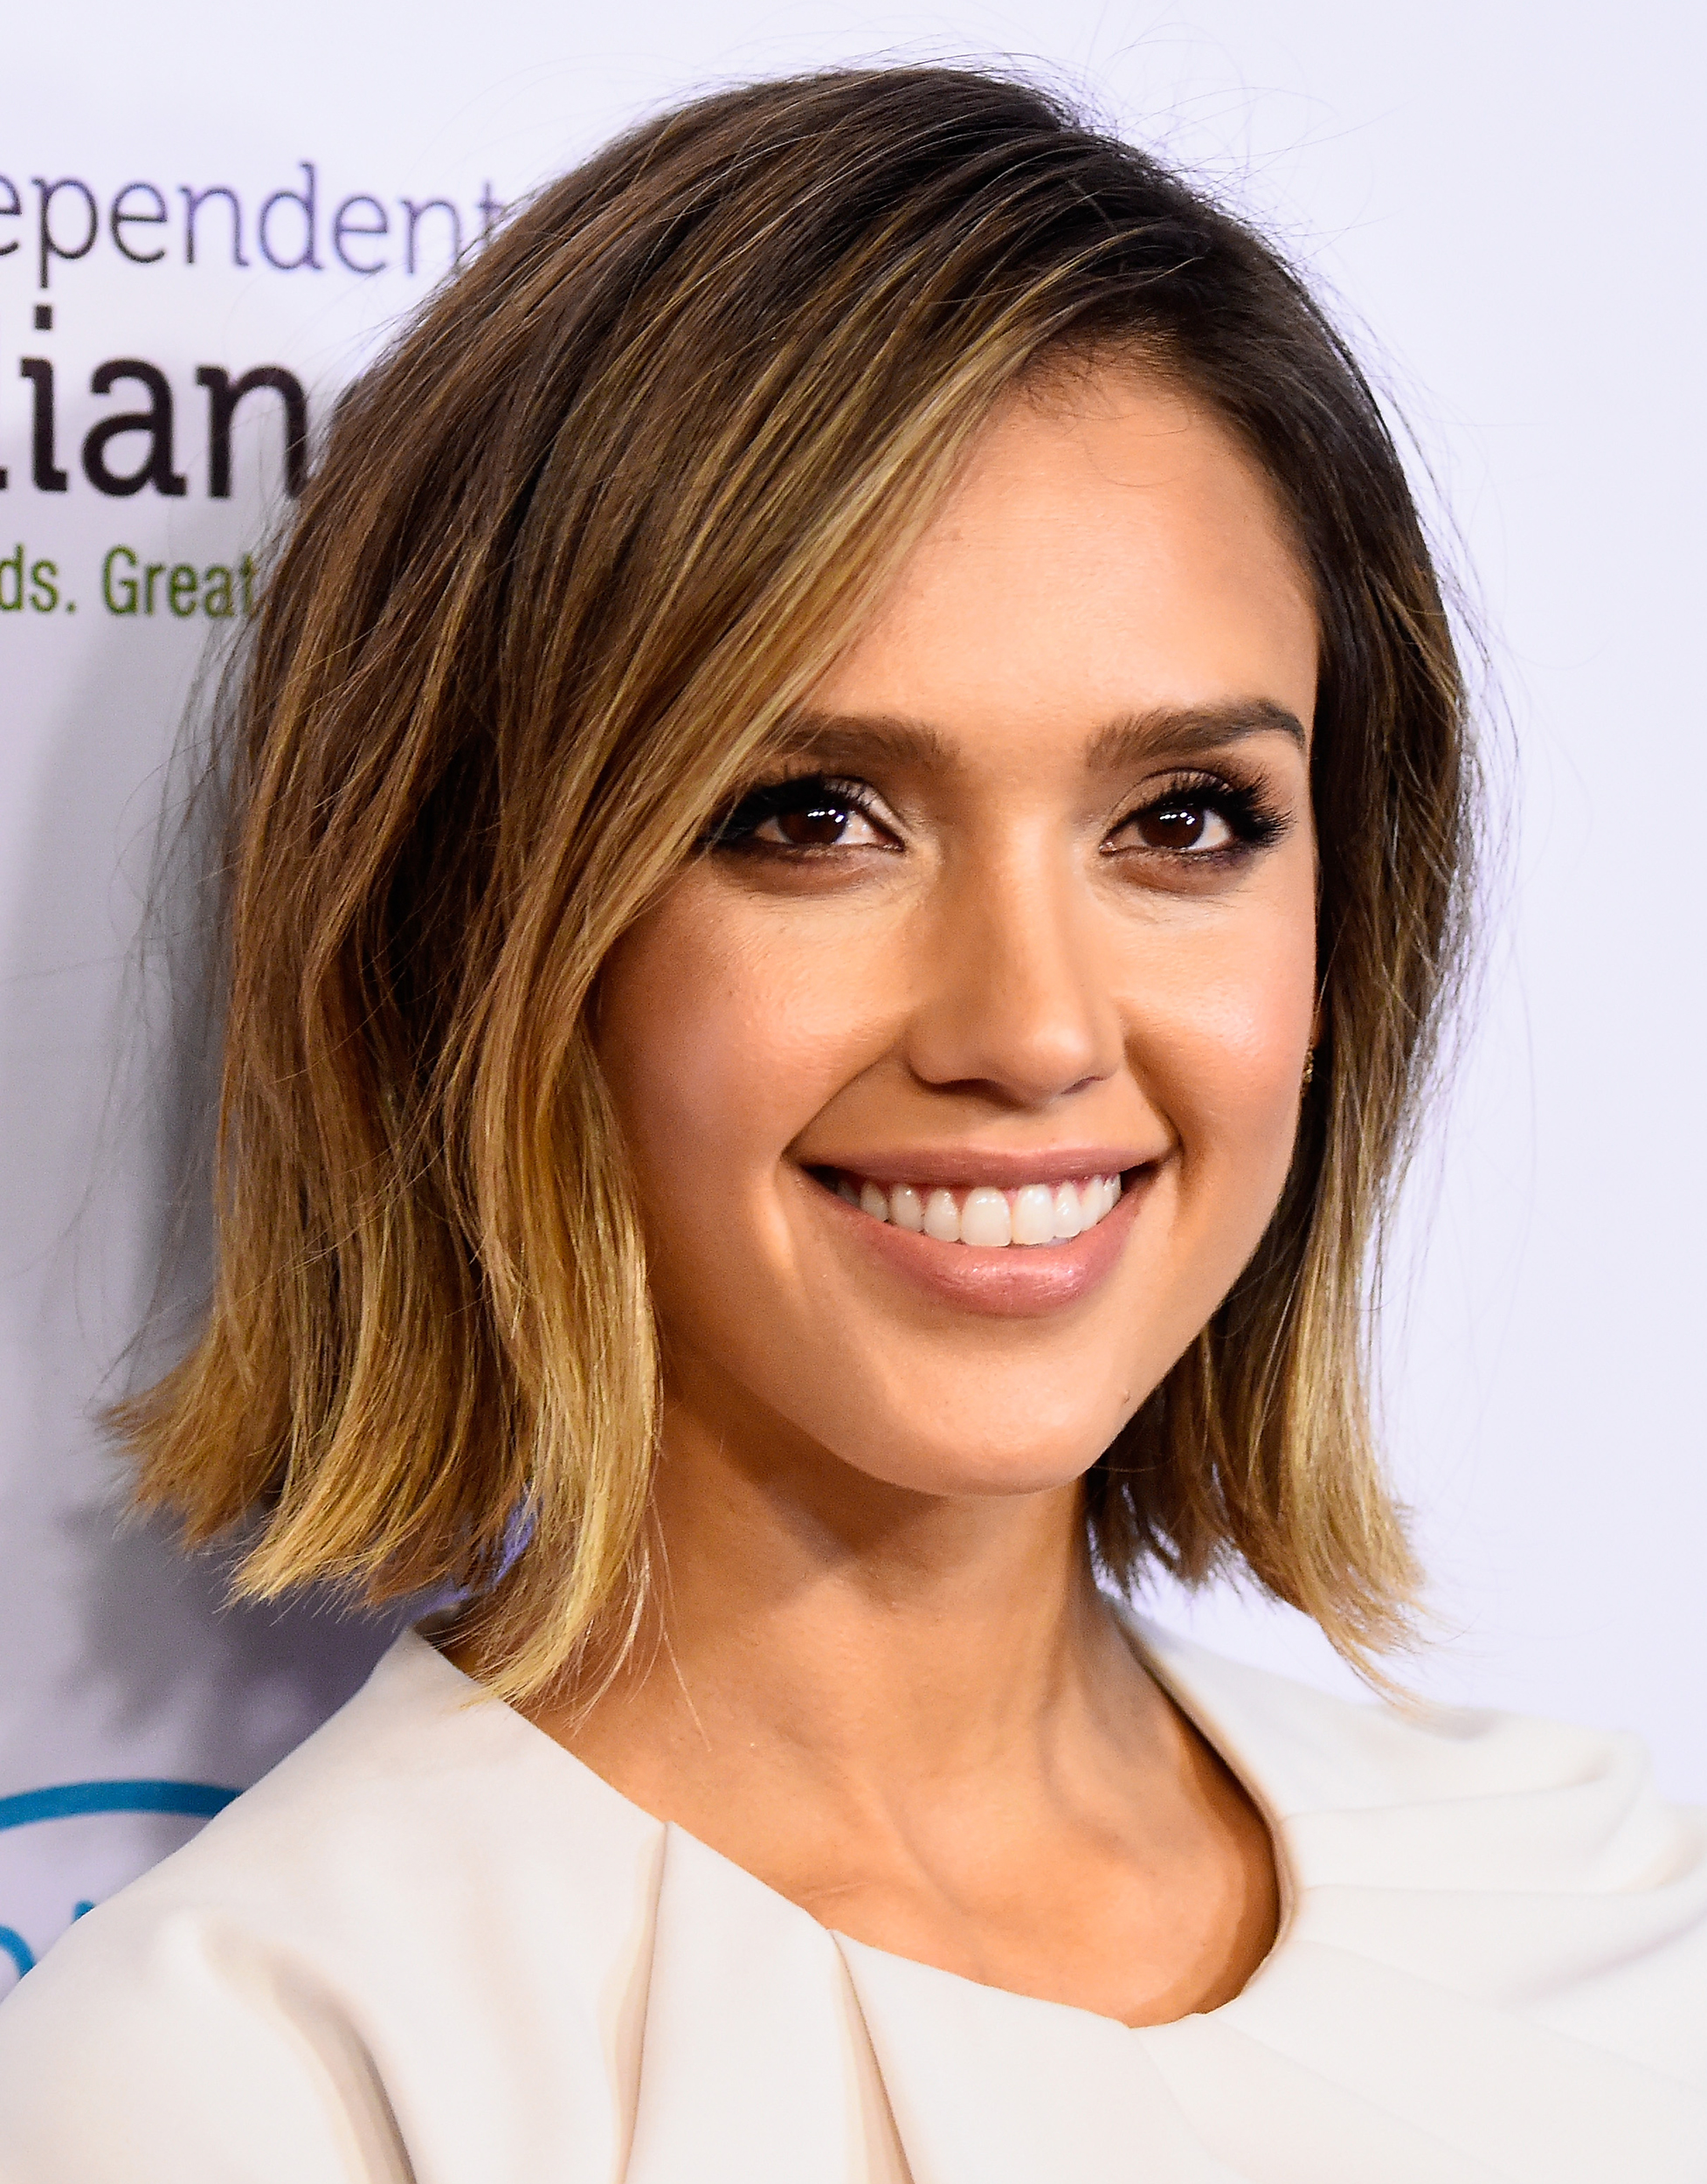 jessica alba's hairstyles through the years